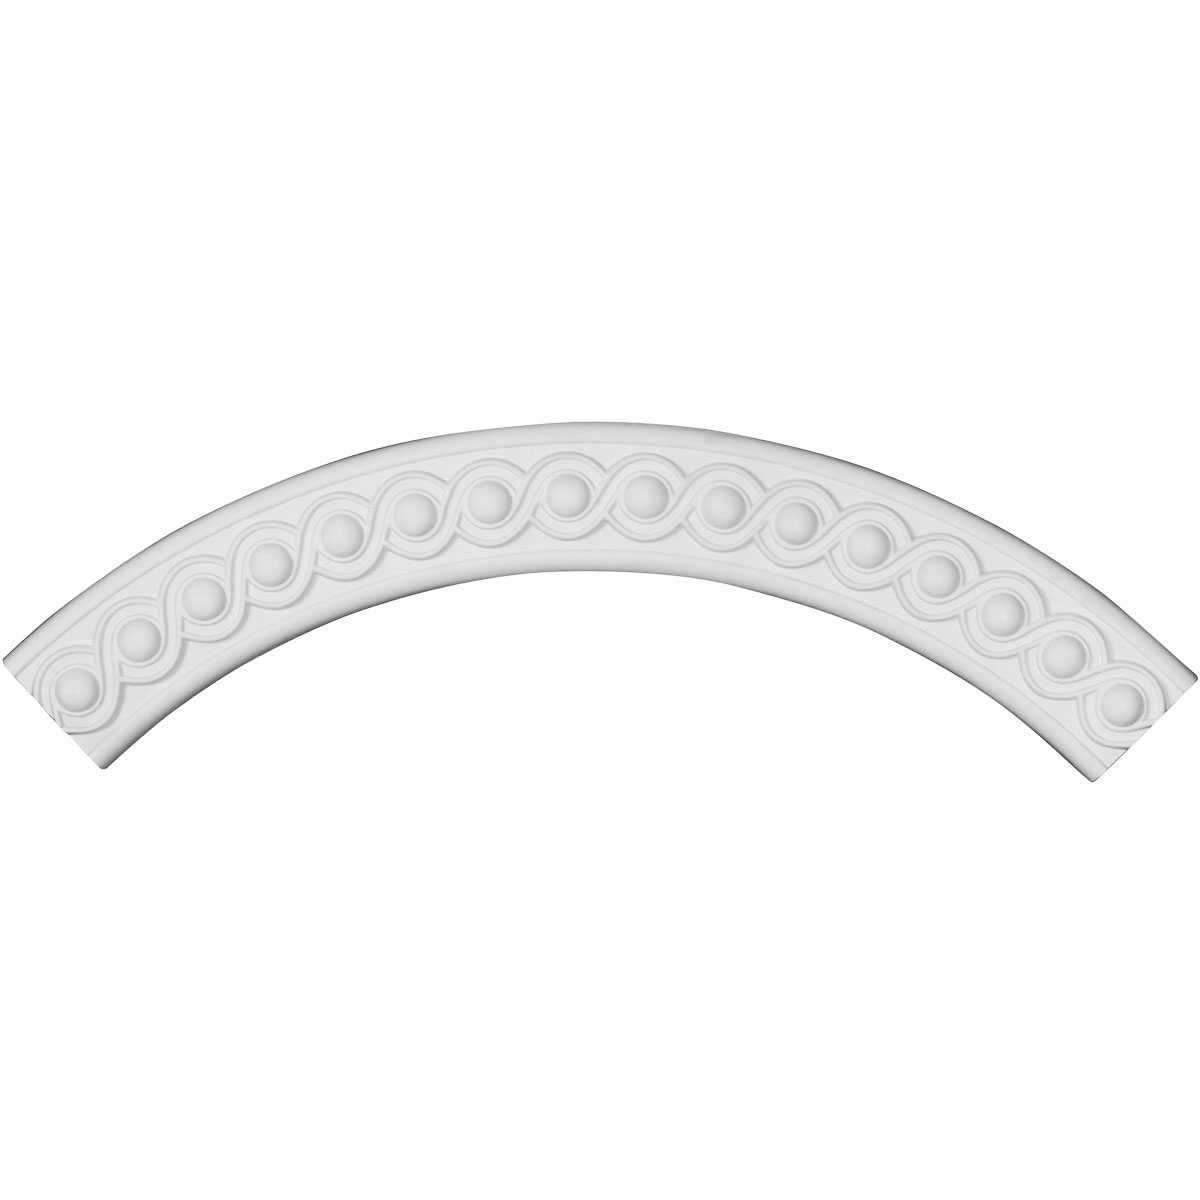 28 3/4'OD x 23 5/8'ID x 2 5/8'W x 5/8'P Hillsborough Ceiling Ring (1/4 of complete circle)